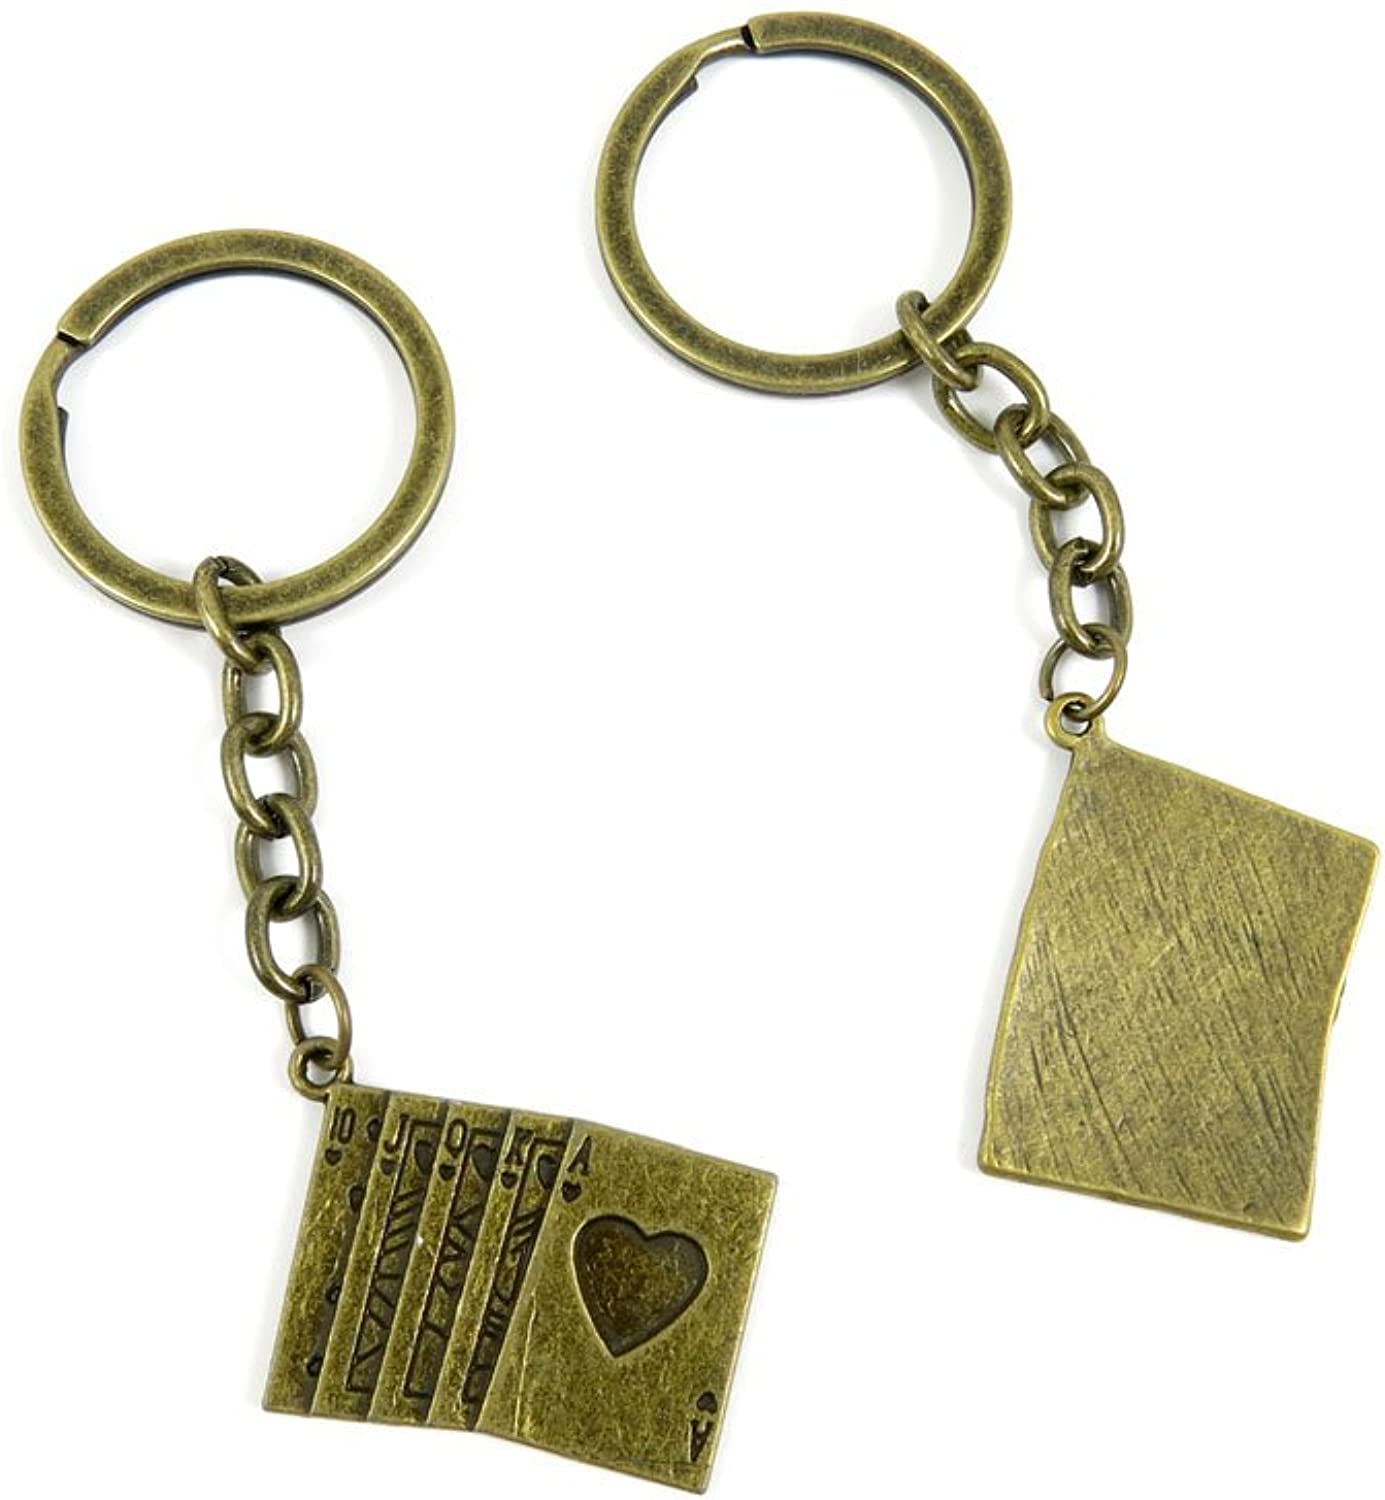 120 Pieces Fashion Jewelry Keyring Keychain Door Car Key Tag Ring Chain Supplier Supply Wholesale Bulk Lots L2AY5 Poker Straight Flush